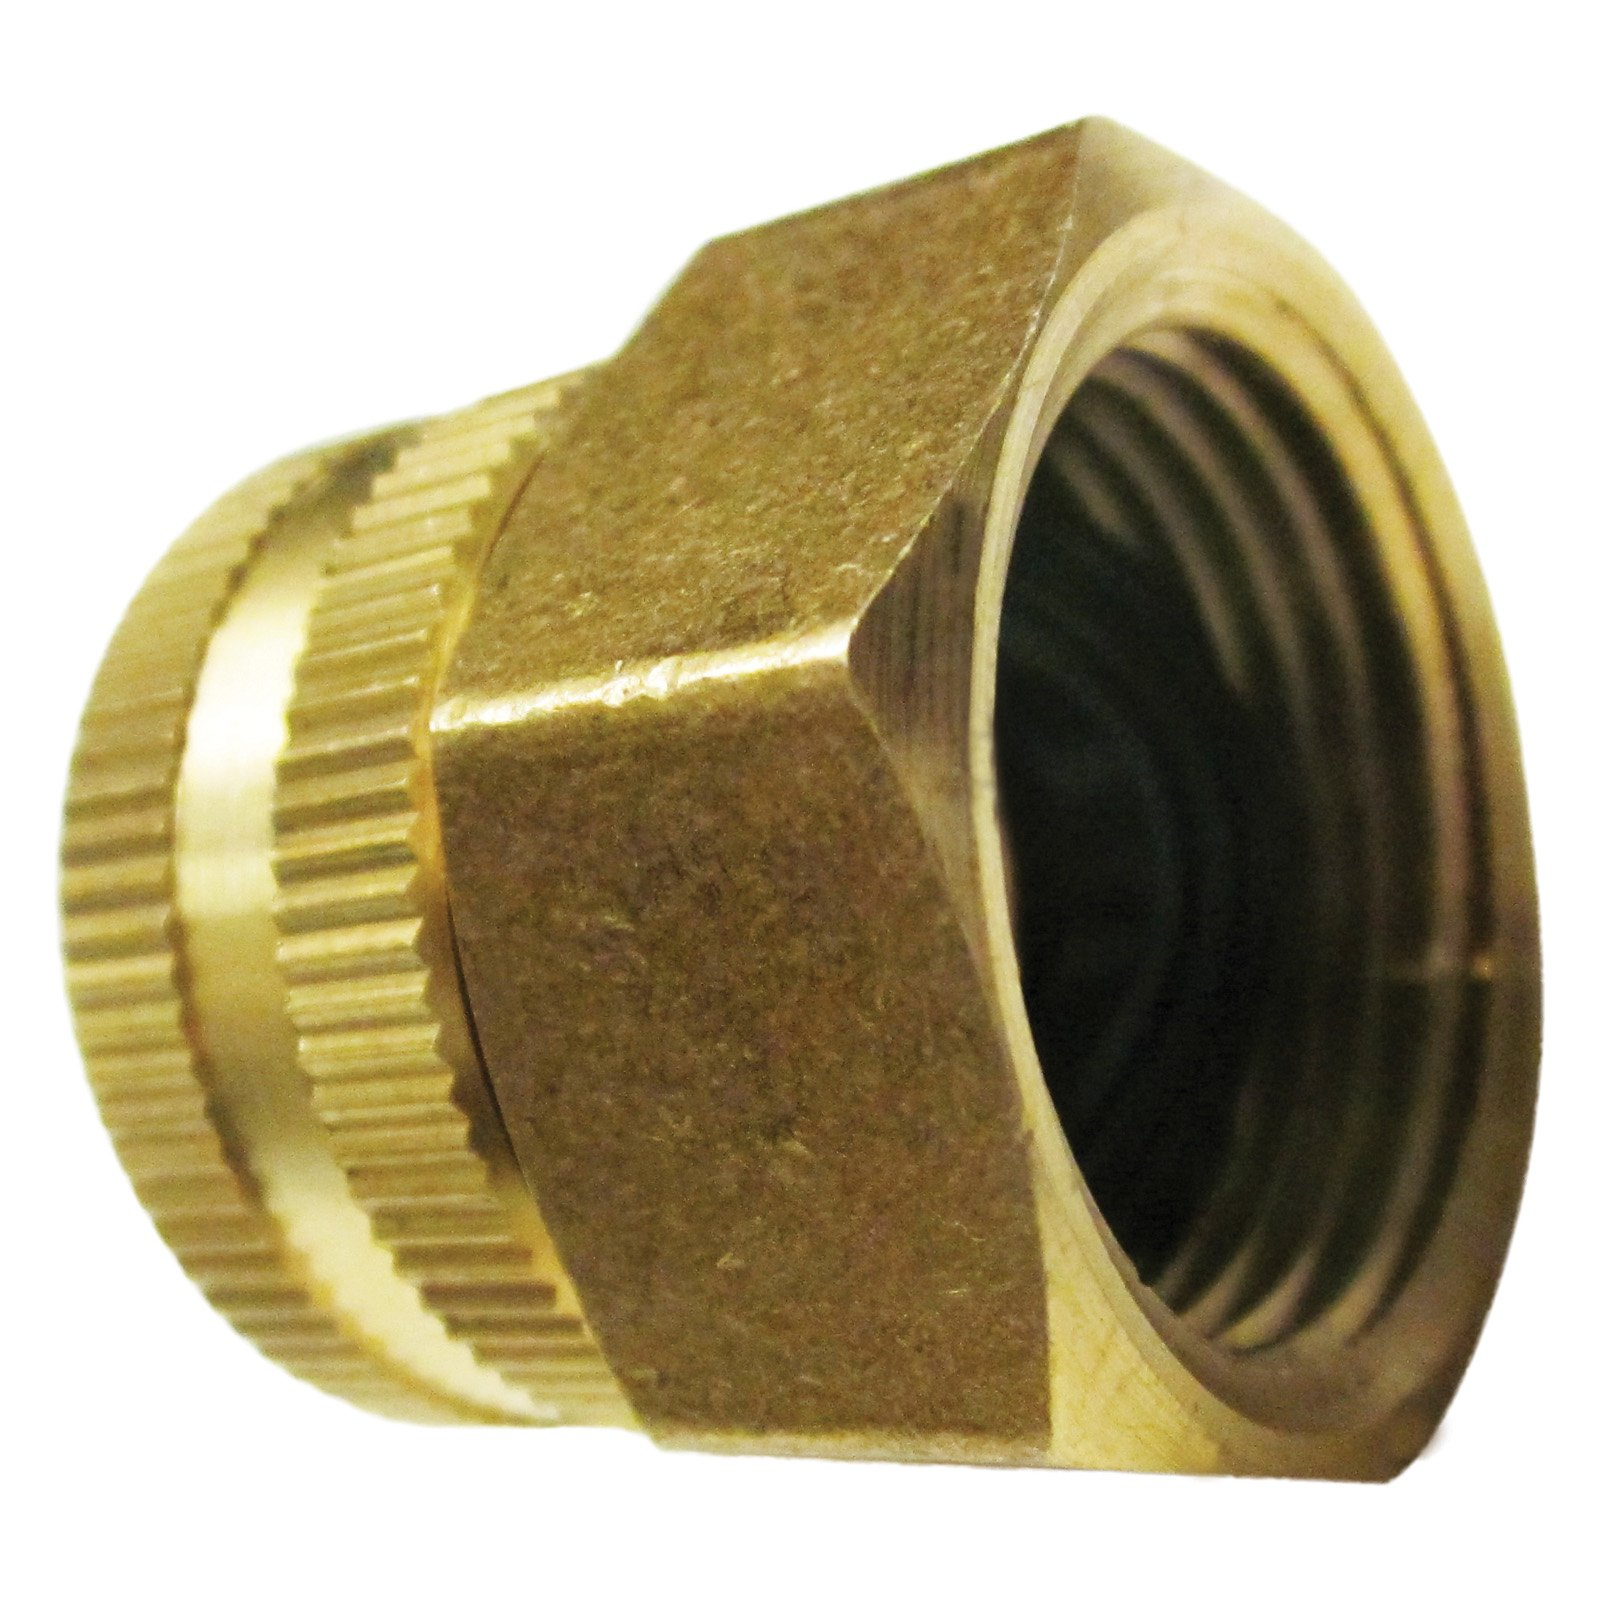 "Dual Swivel Brass Connector 3/4"" x 3/4"" Garden Hose to Pipe End (SPX Series) – SPX-BSC"